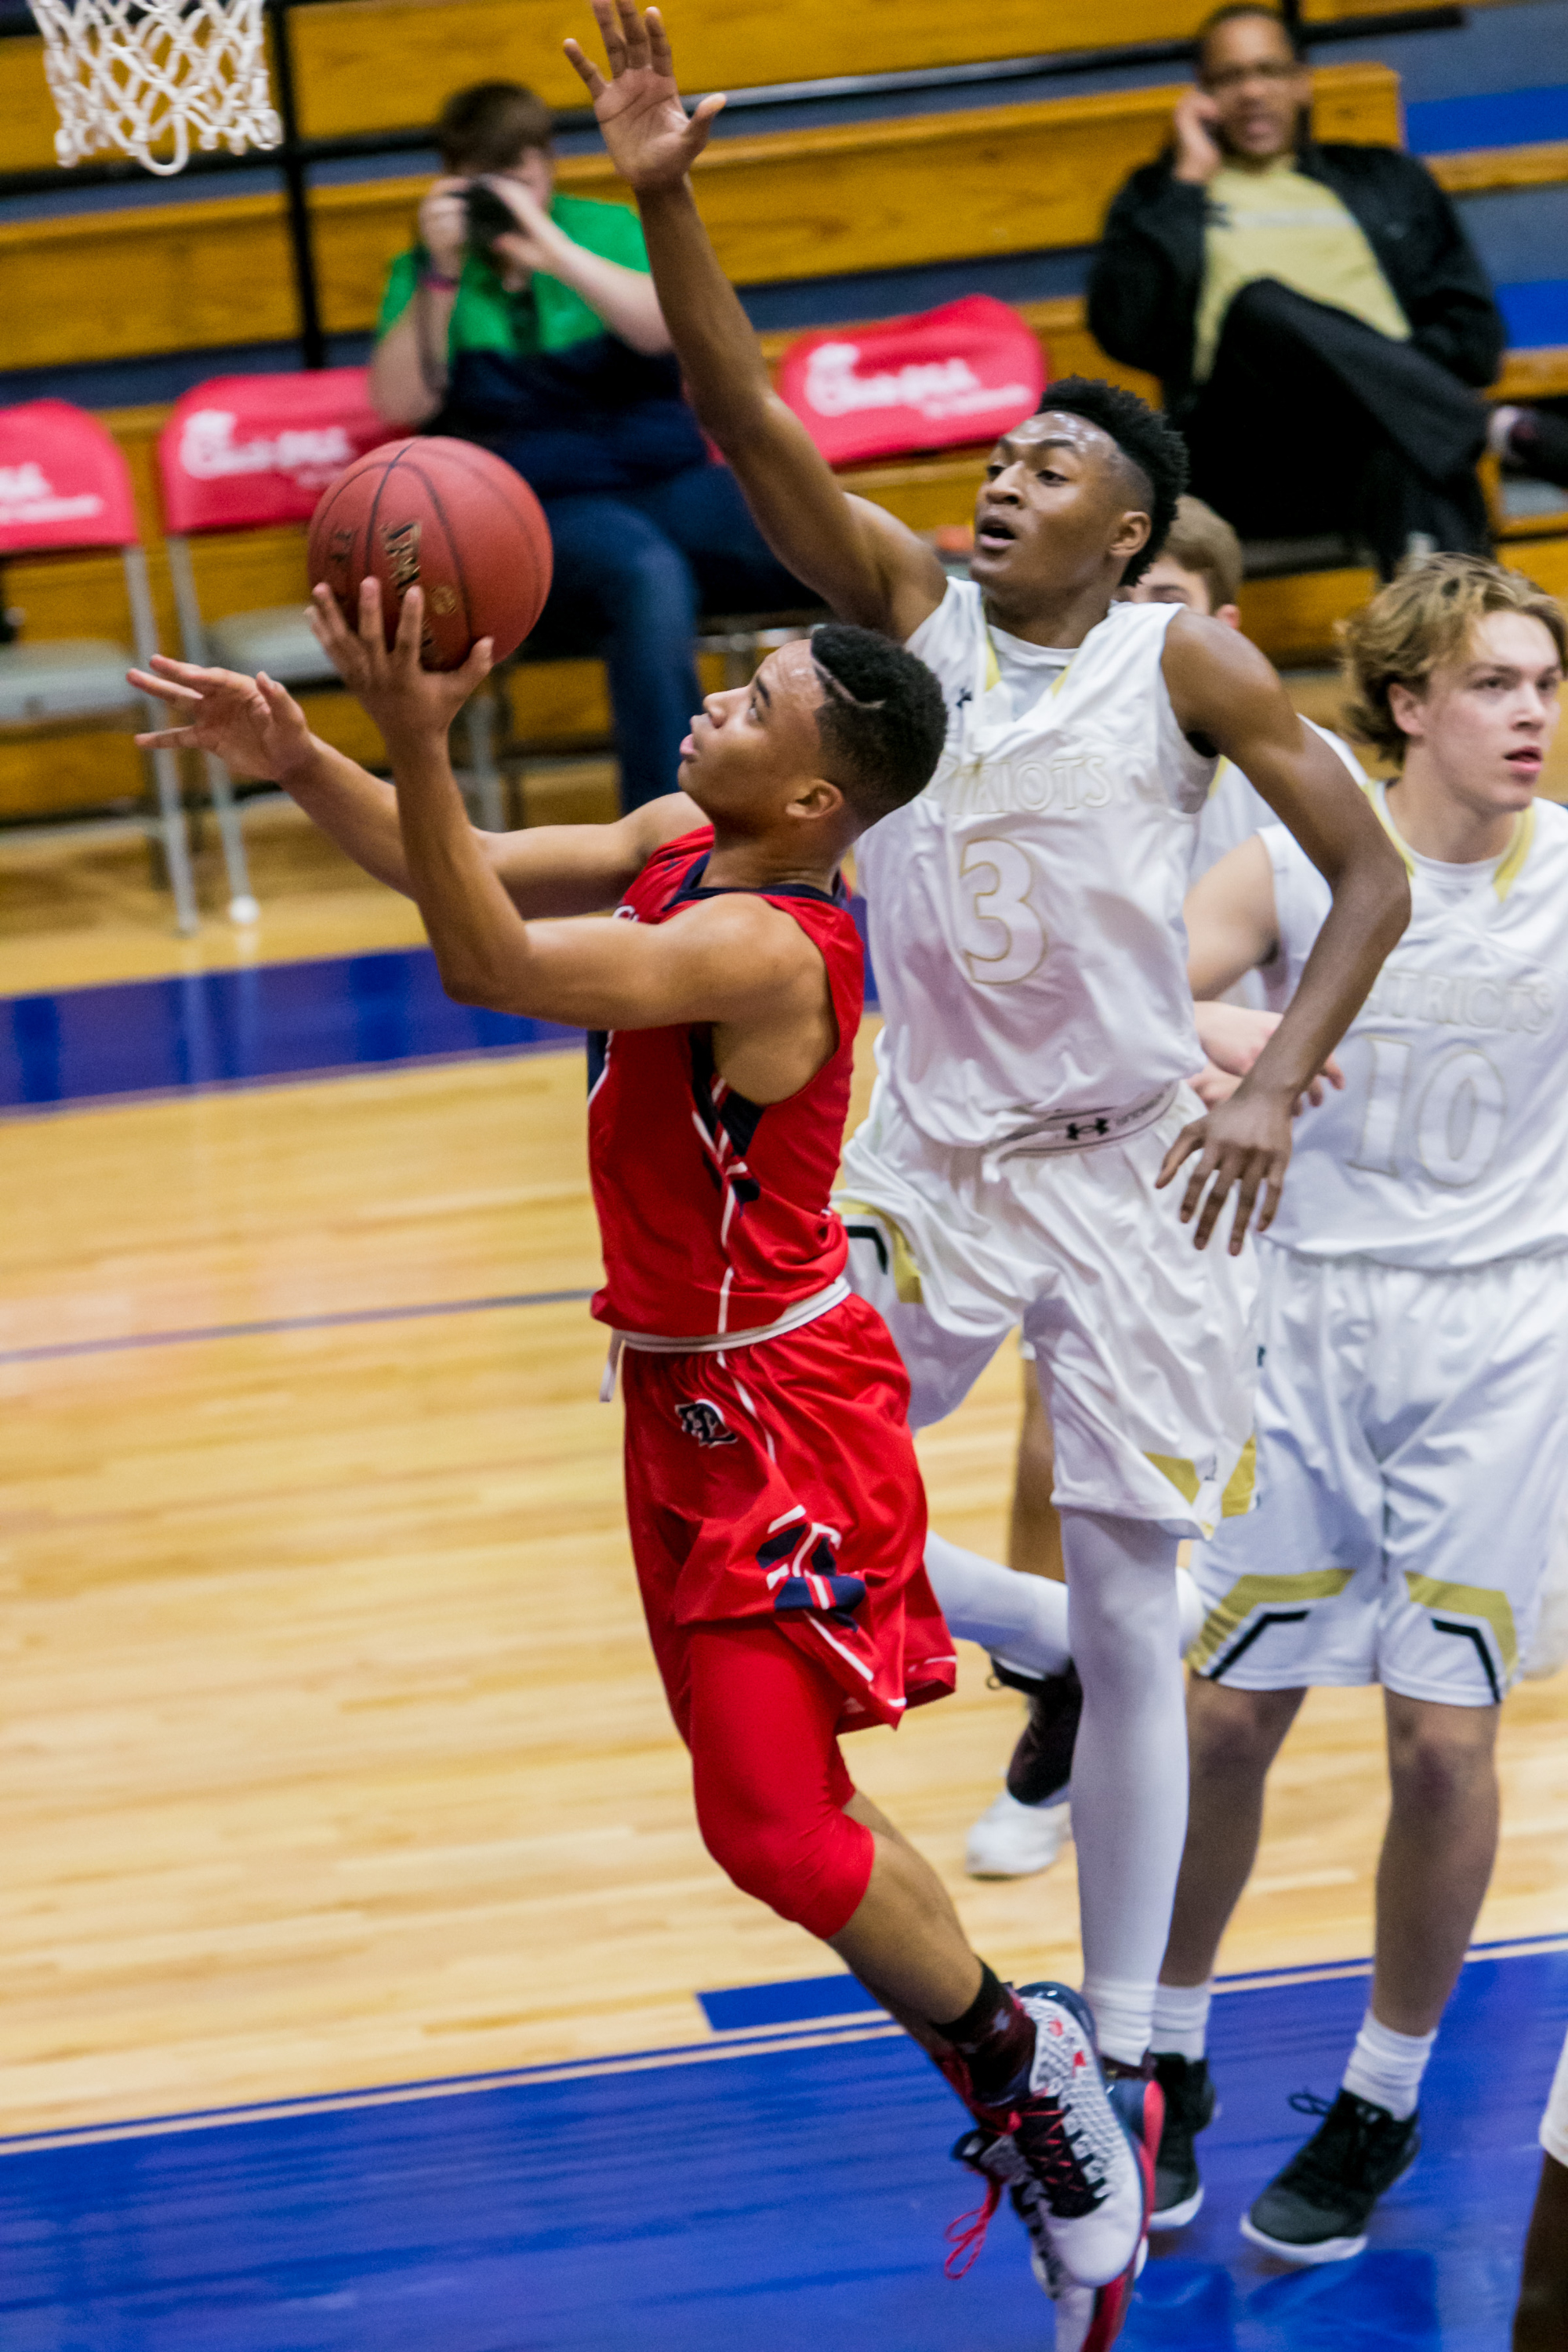 12/21/16 12:18:20 PM -- Columbia, SC, U.S.A  --  Providence Day Chargers guard Devon Dotson (1) drives past John Carroll Patriots guard Immanuel Quickley (3) in the first half of their game in the Chick-fil-A Classic Holiday Basketball Tournament. --    Photo by USA TODAY  Sports Images, Gannett ORG XMIT:  US 135850 Chick-fil-A hoop 12/2 [Via MerlinFTP Drop]